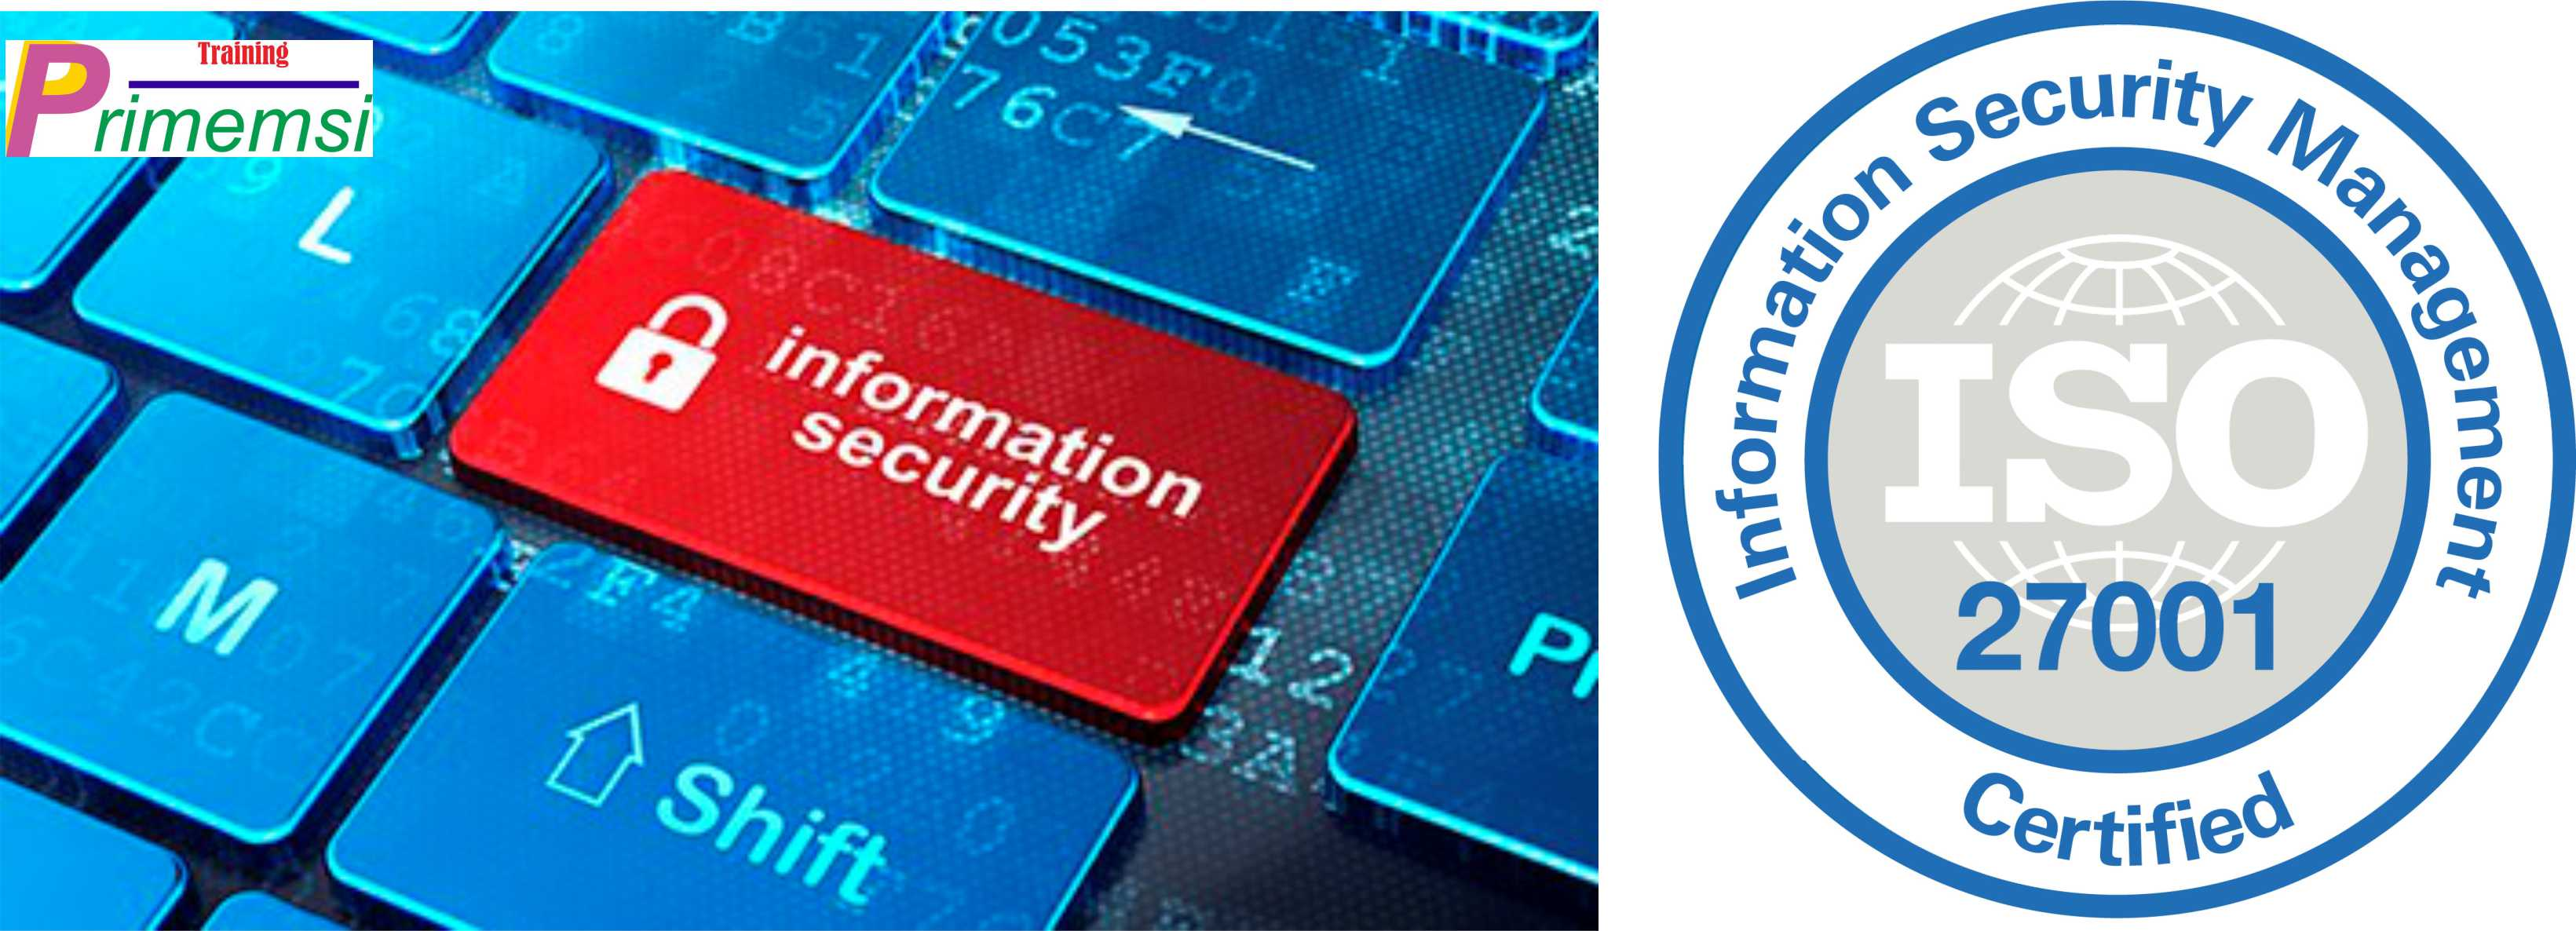 iso 27001 Security Information Management System